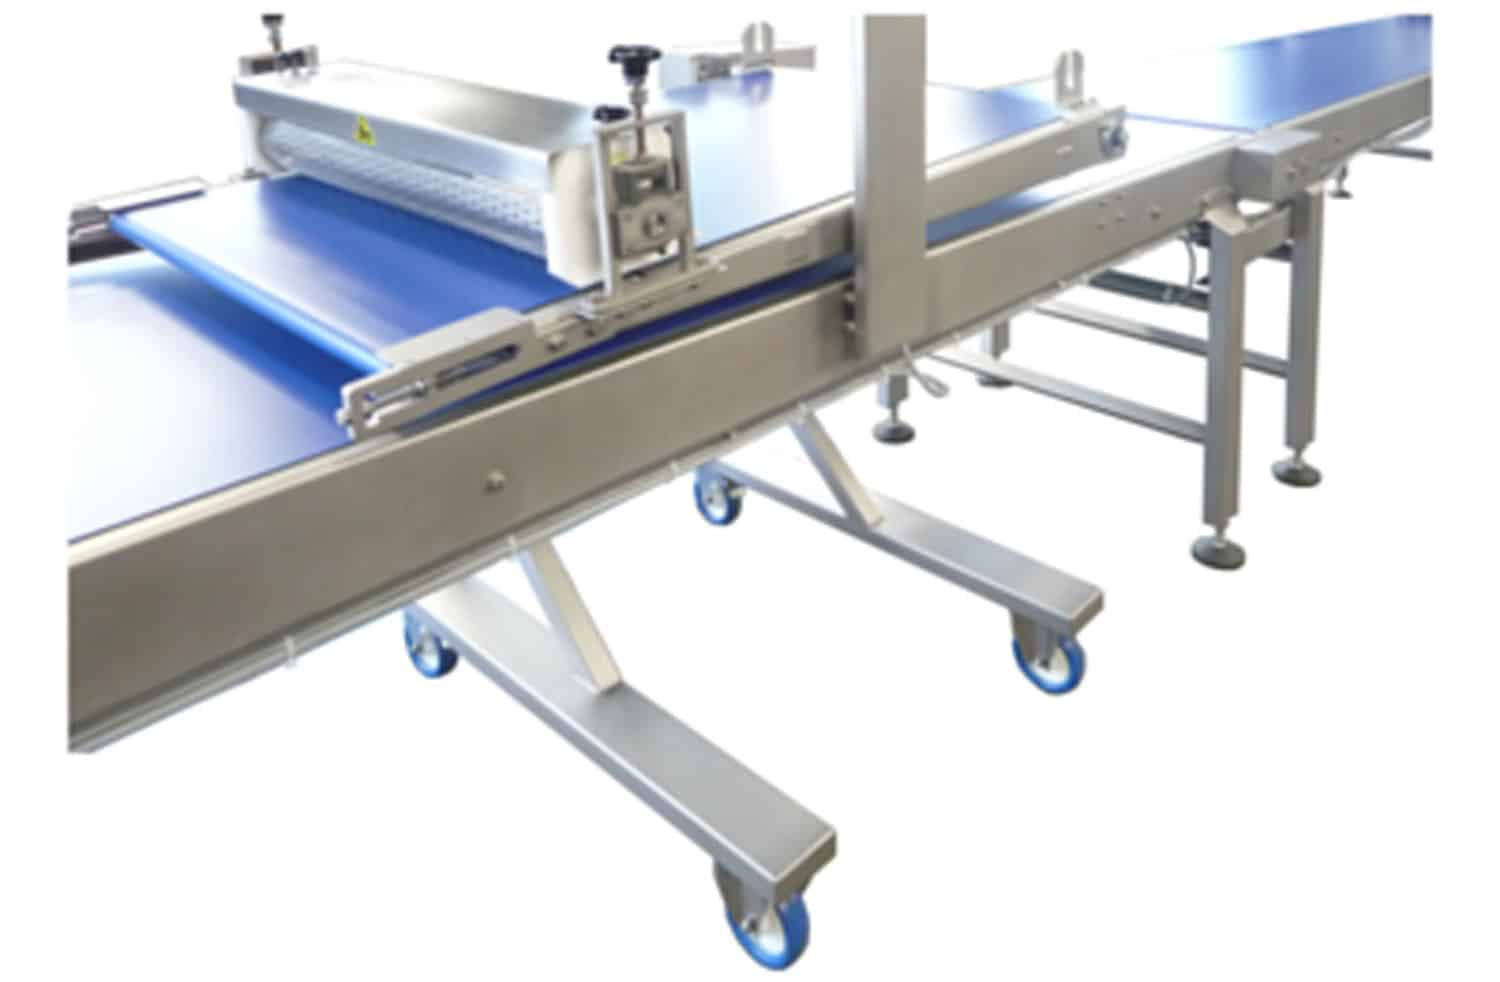 Semi-automatic finishing line 06 Tonnaer Mixing Systems